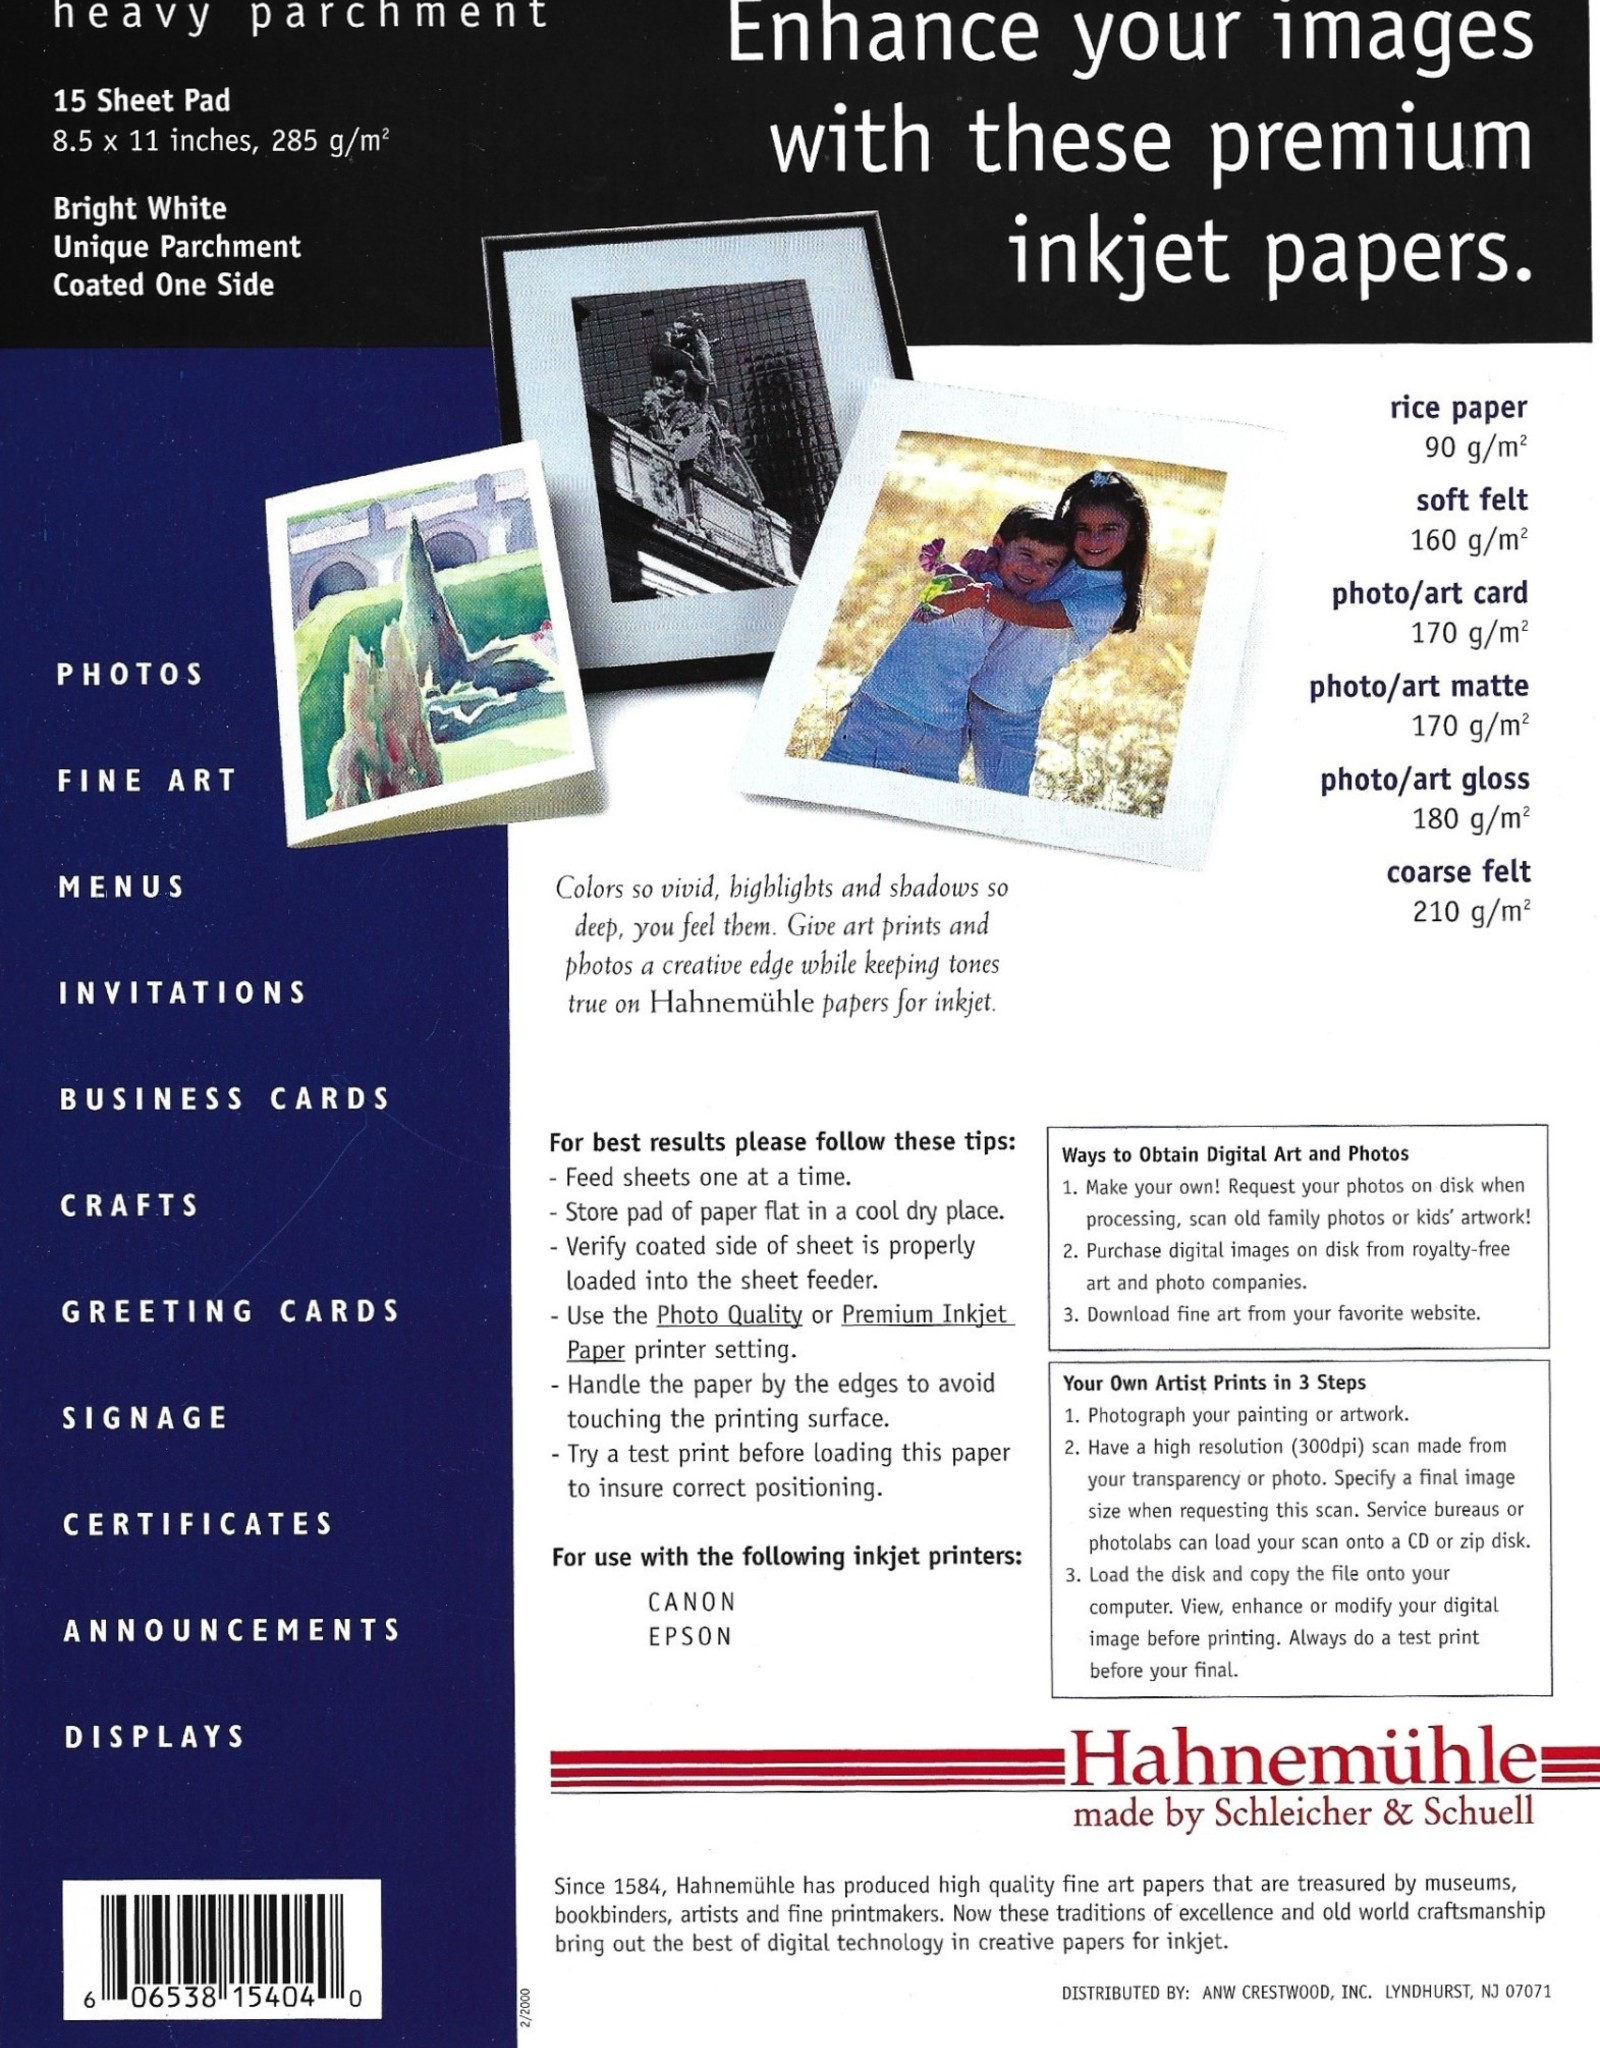 "Hahnemuhle Creative Papers for Inkjet, Bright White, Heavy Parchment, 8.5"" x 11"", 285gm, 15 Sheet Pad"